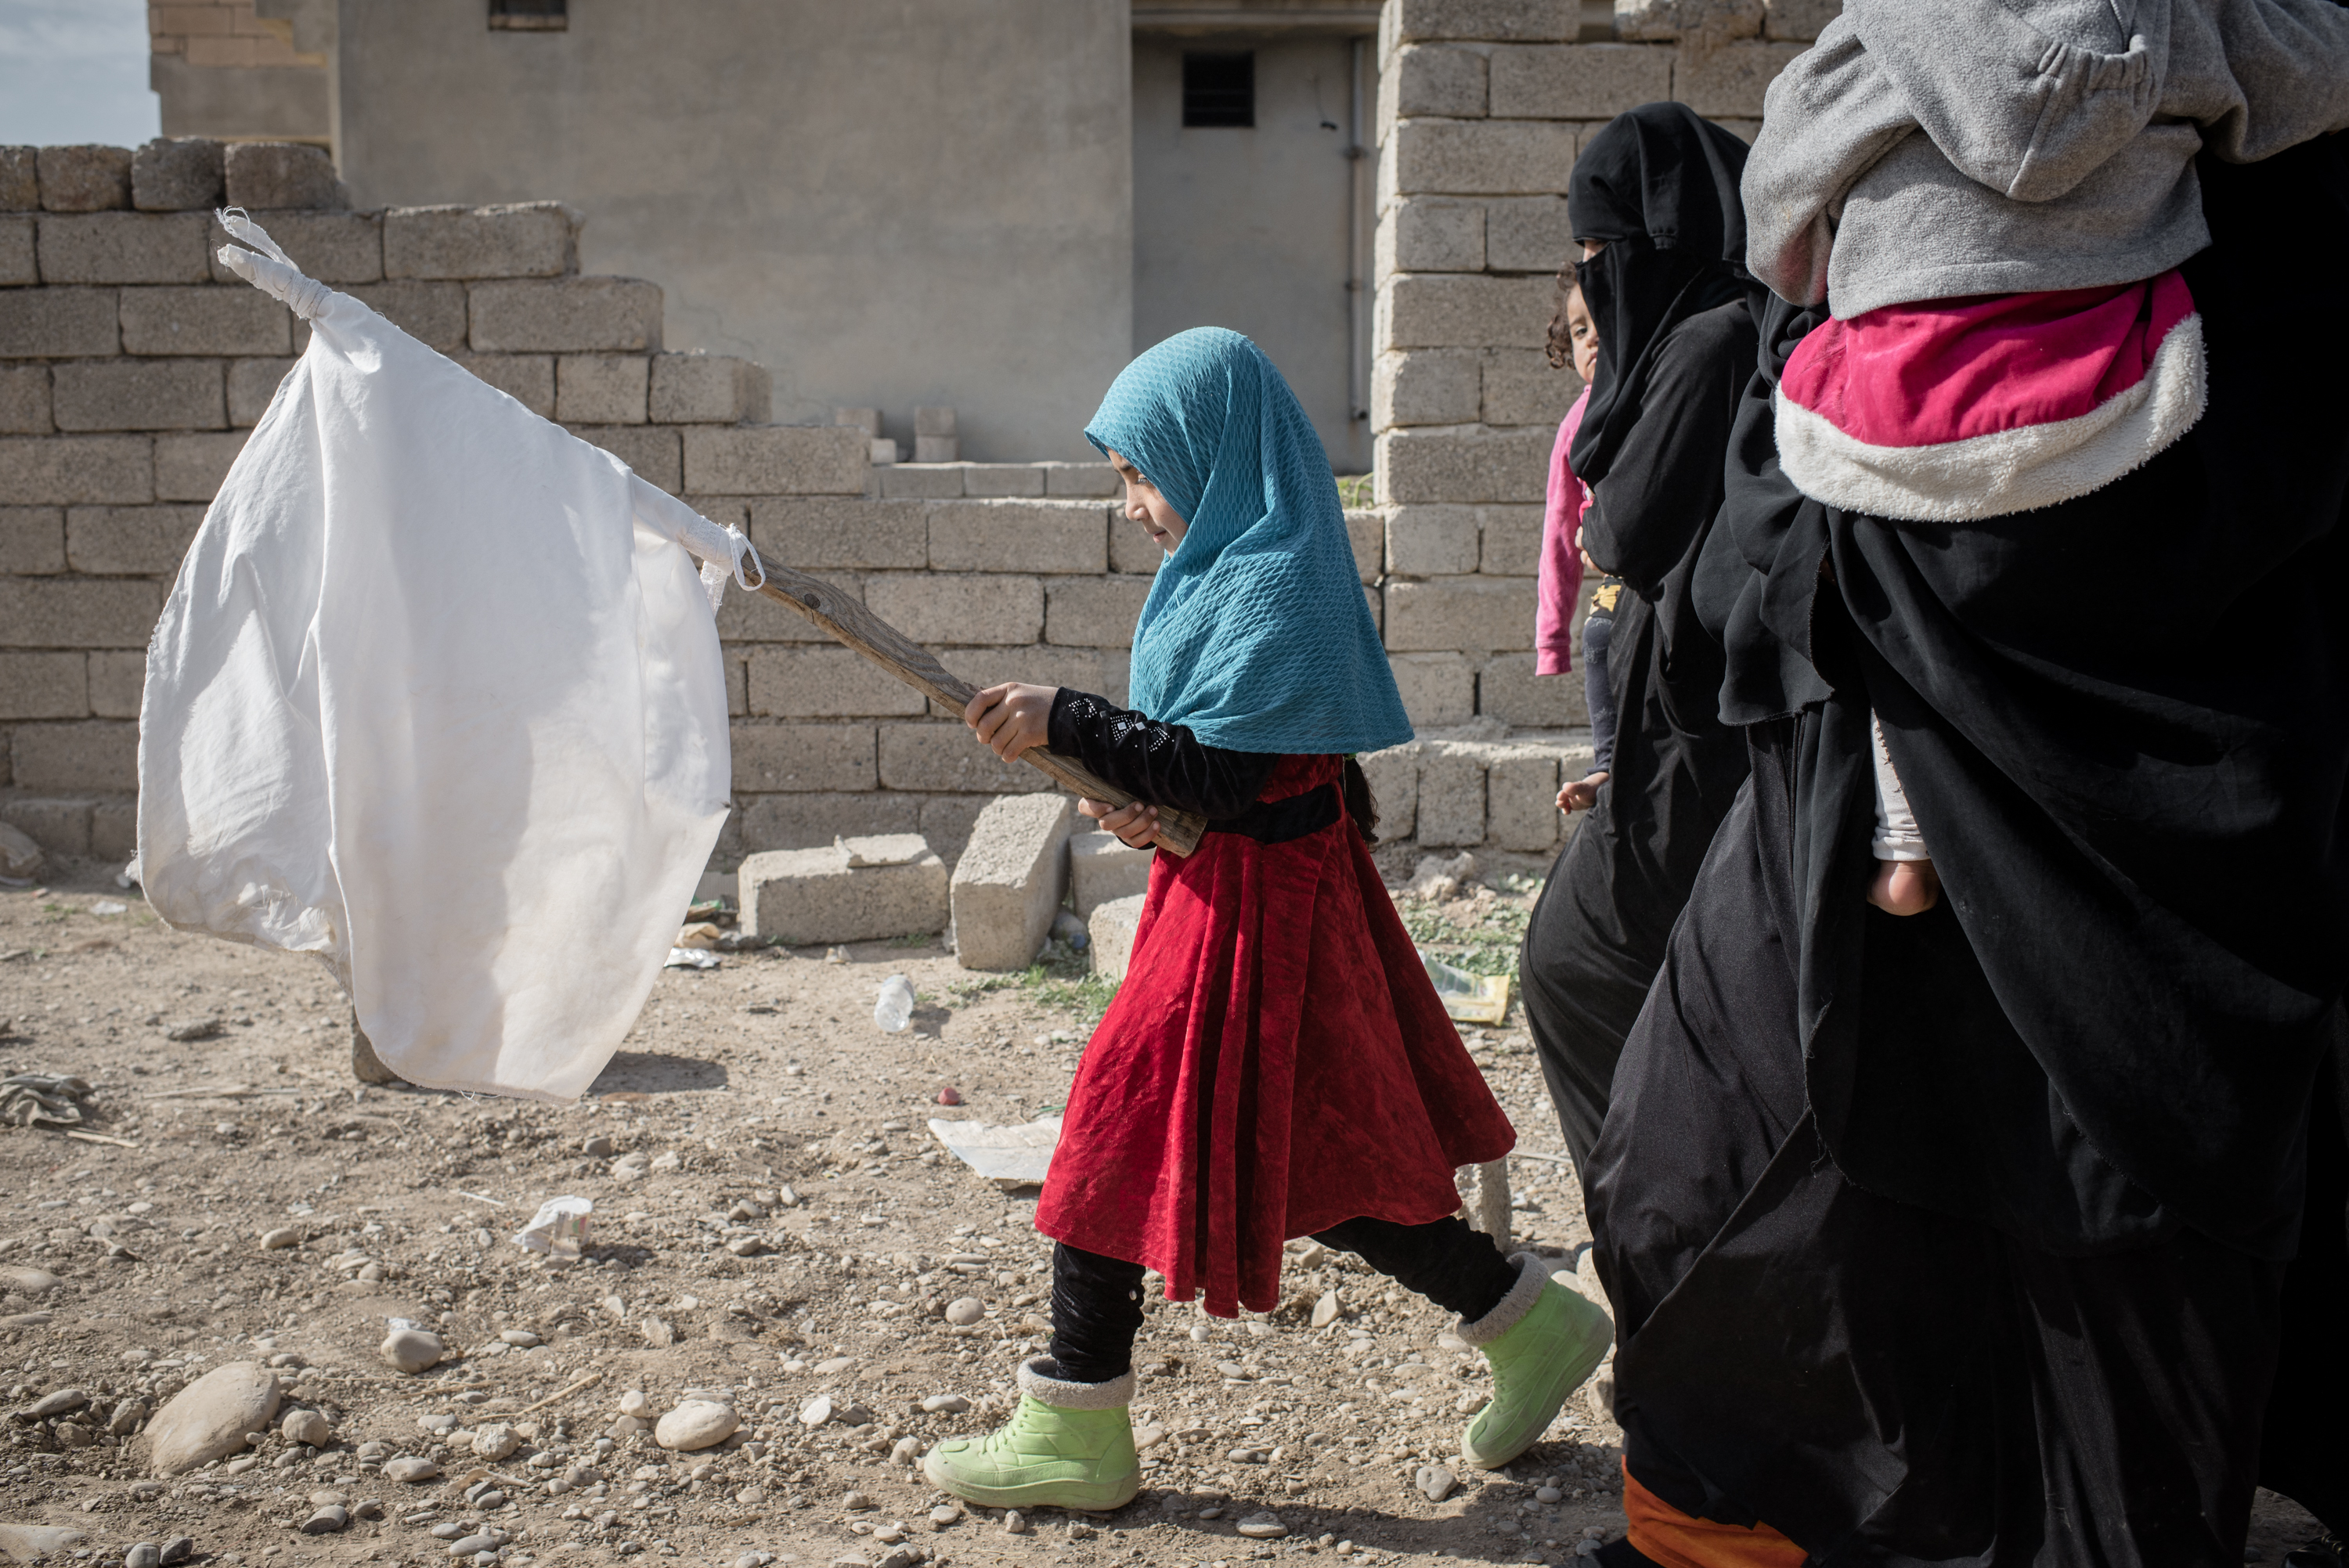 total war civilians as casualties and Key findings as of august 2016, more than 31,000 civilians are estimated to have died violent deaths as a result of the war many afghans dealing with ill health and war wounds find it difficult to get to hospitals and clinics because violence makes roads unsafe.